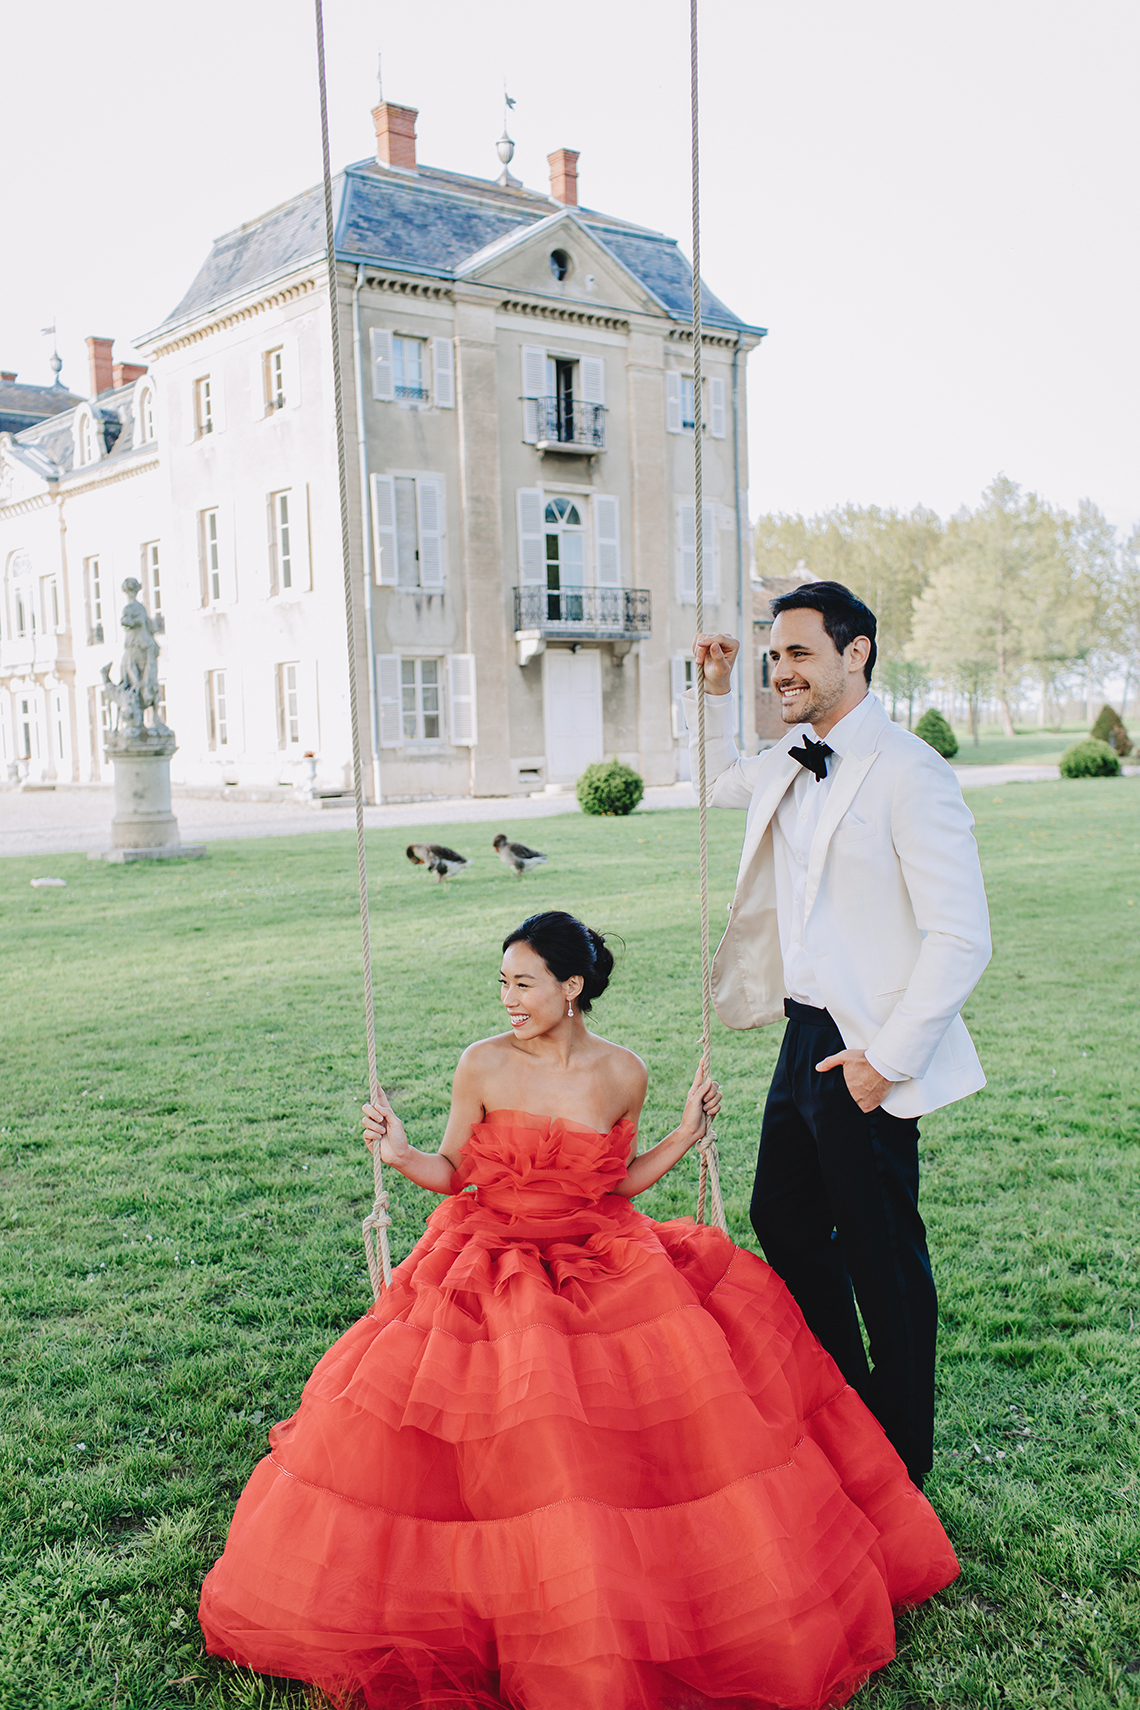 Sexy French Chateau Wedding Inspiration with a Red Wedding Dress – JuMi Story 69